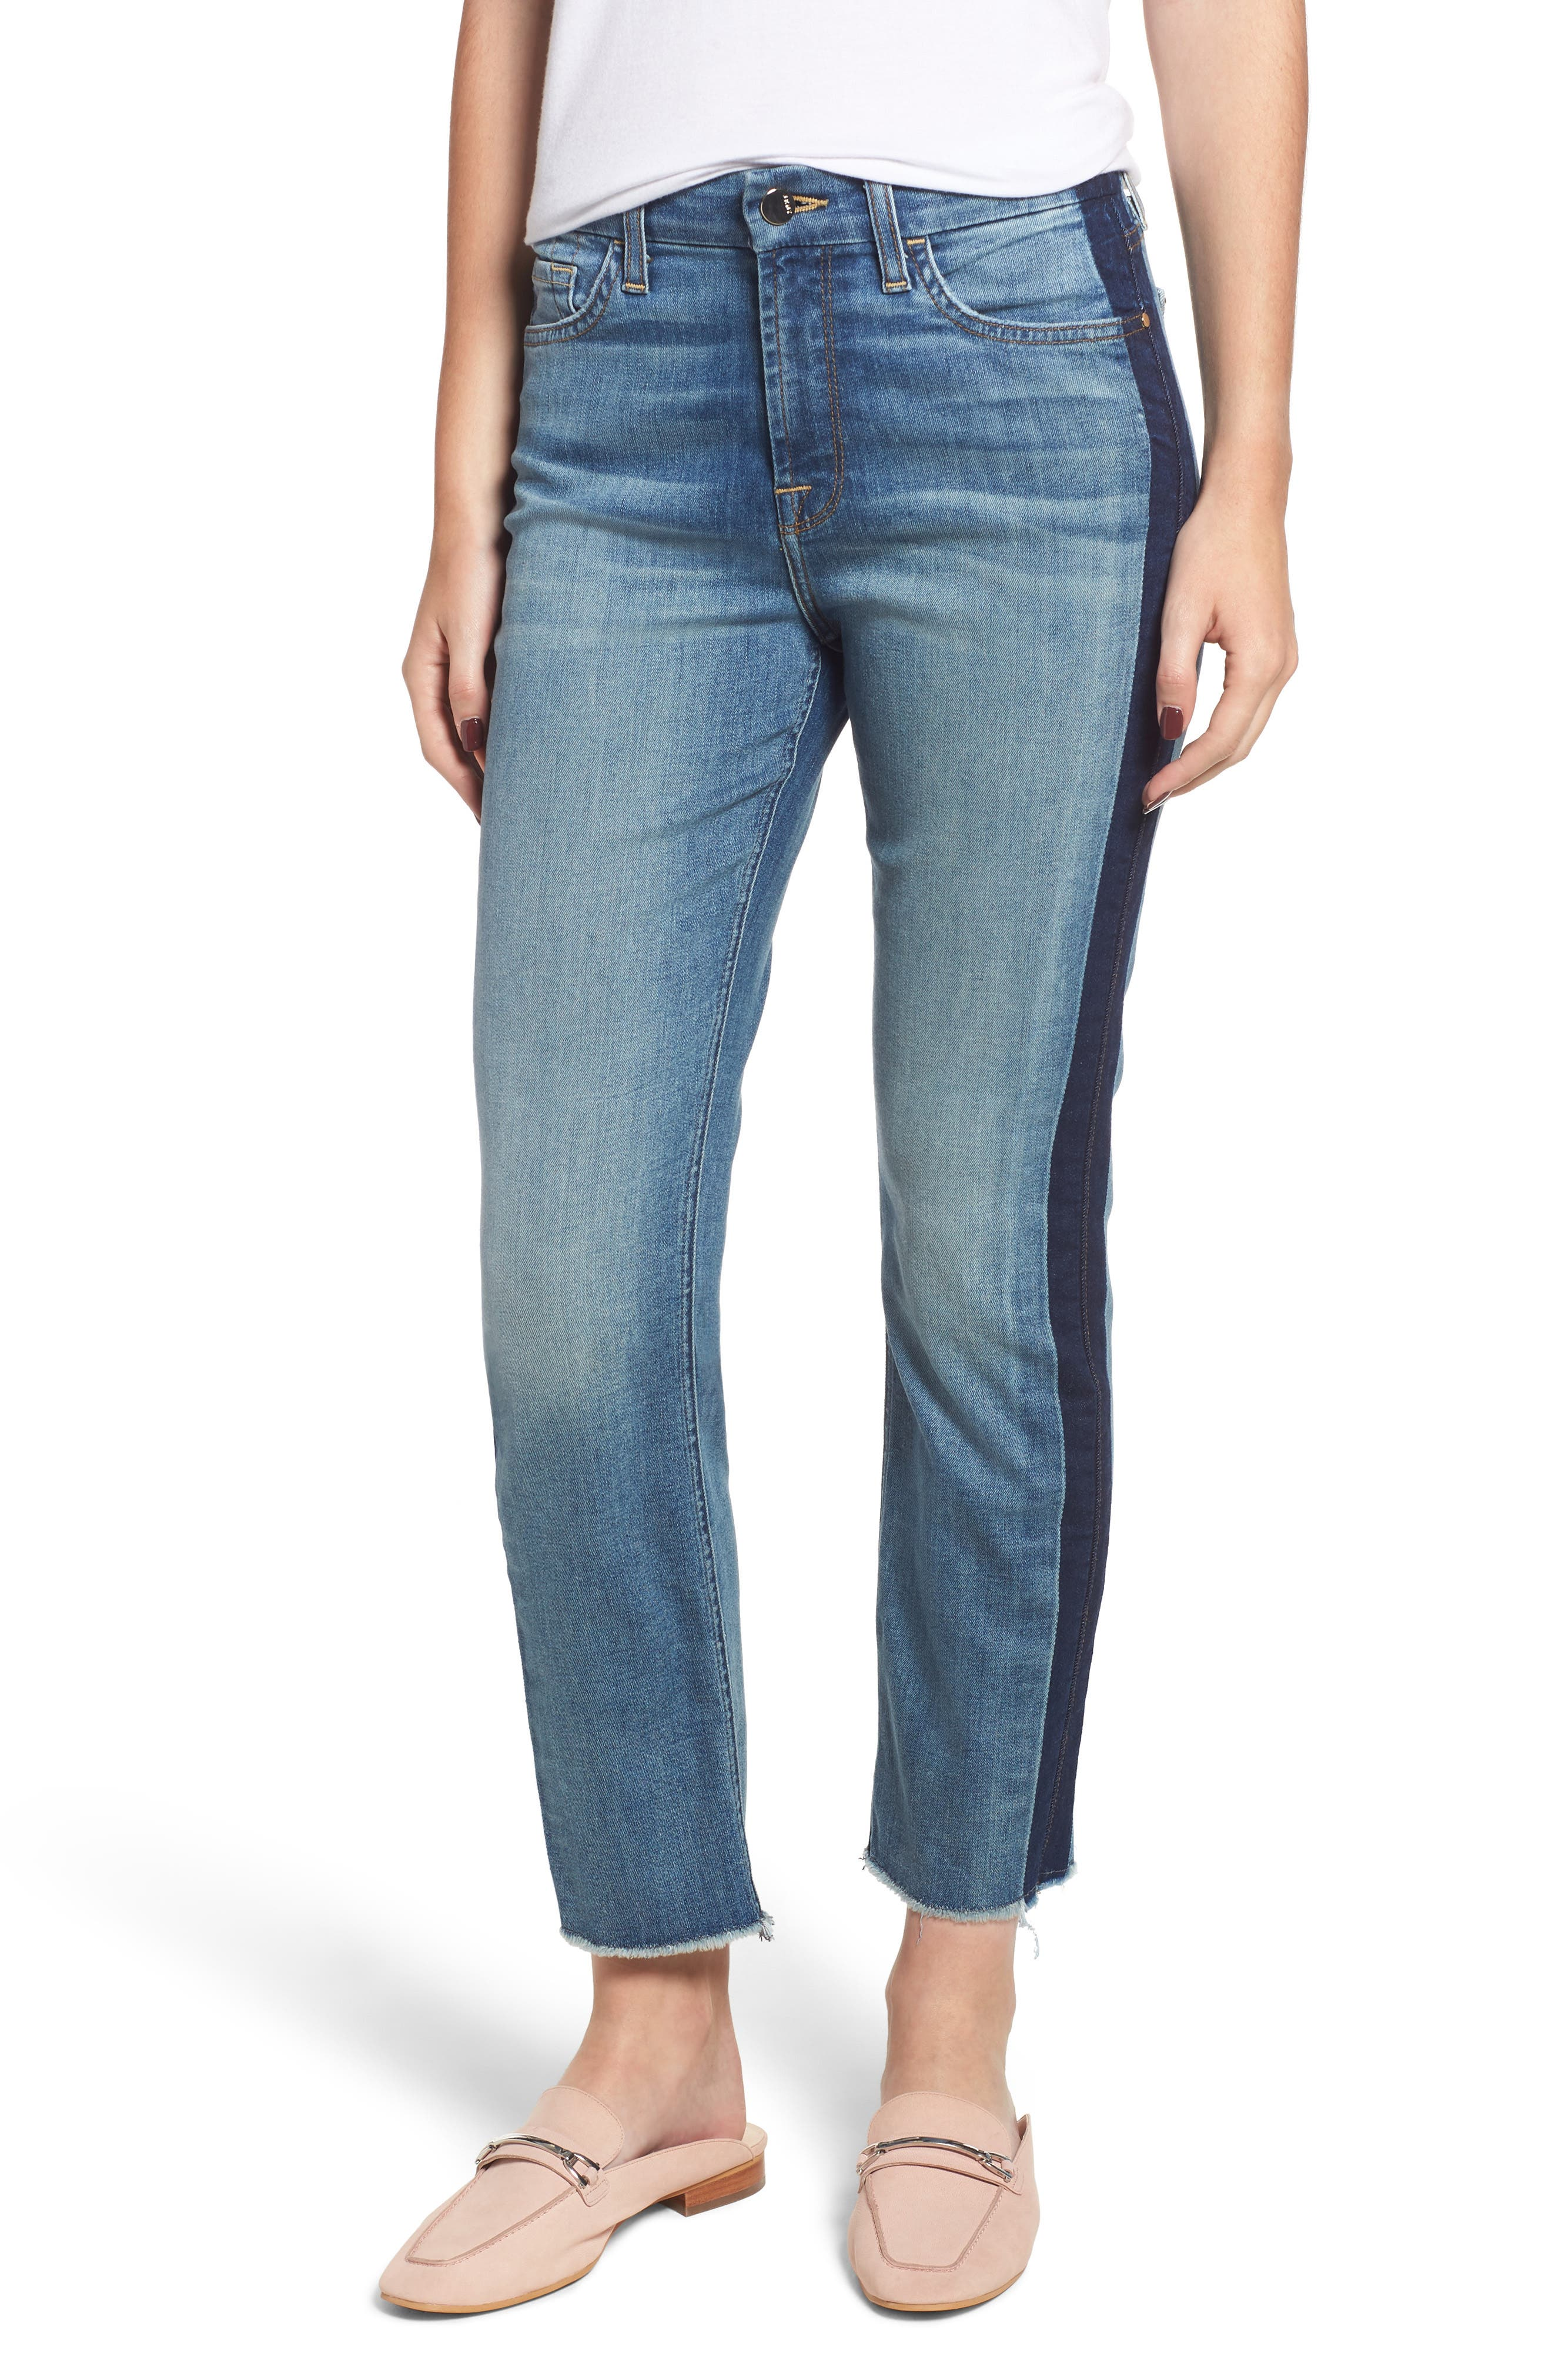 JEN7 BY 7 FOR ALL MANKIND Straight-Leg Crop Jeans W/ Shadow Seams in Authentic Light Brooklyn